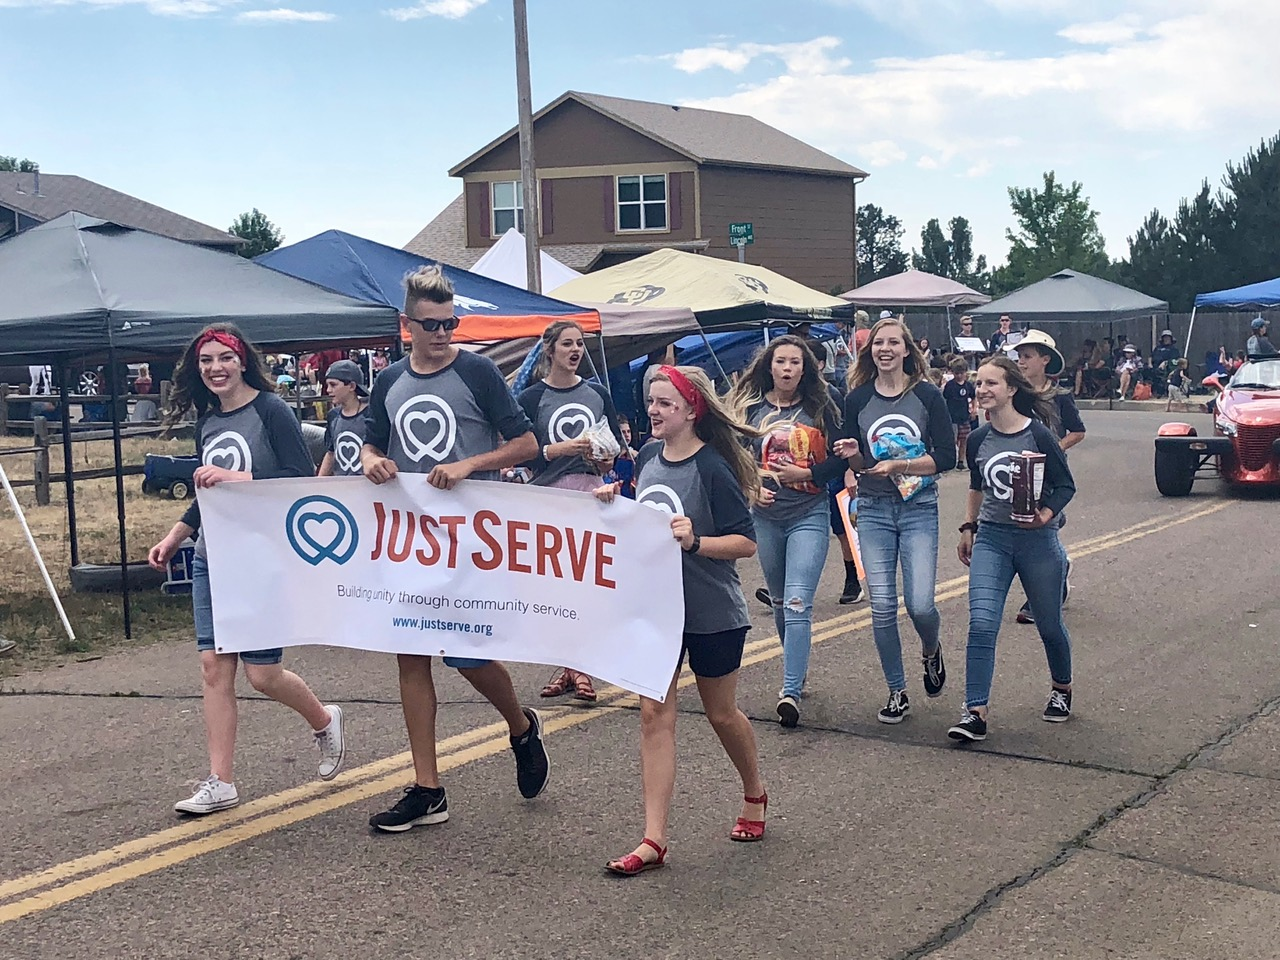 Several youth from the Colorado Springs North Stake represent JustServe during the Monument Hill Kiwanis parade in Monument, Colorado.